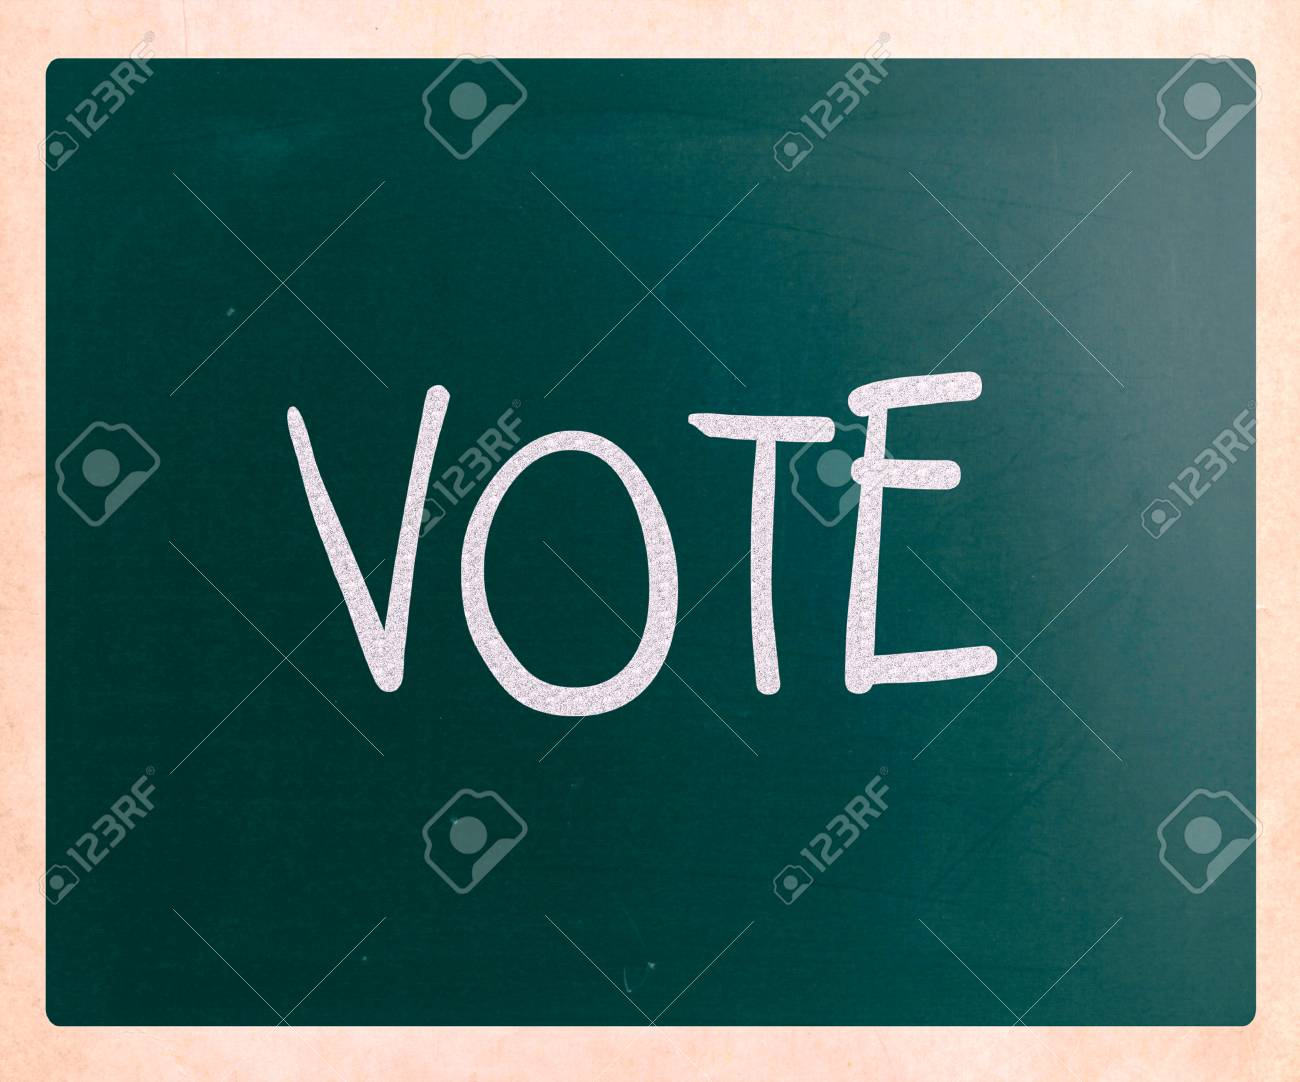 The word 'Vote' handwritten with white chalk on a blackboard Stock Photo - 23422650